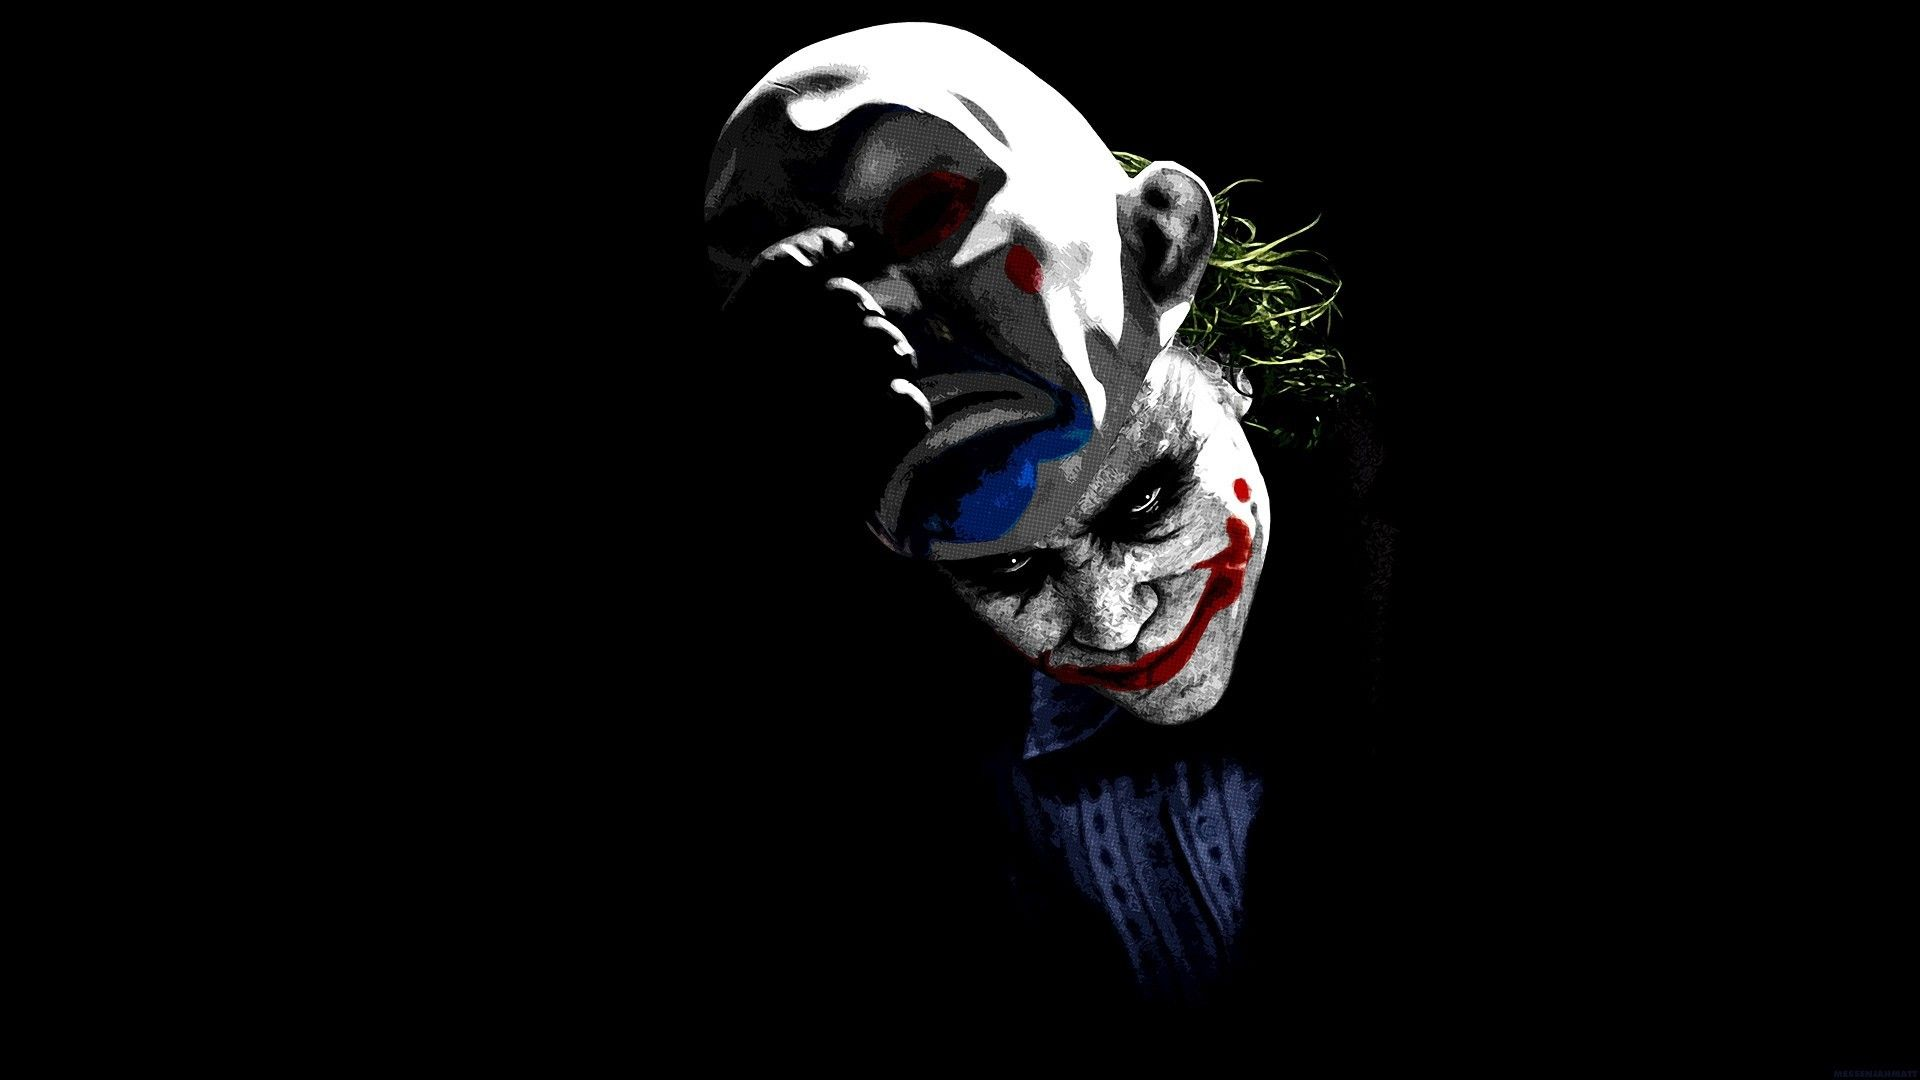 General 1920x1080 Joker Batman The Dark Knight Imiđ Joker